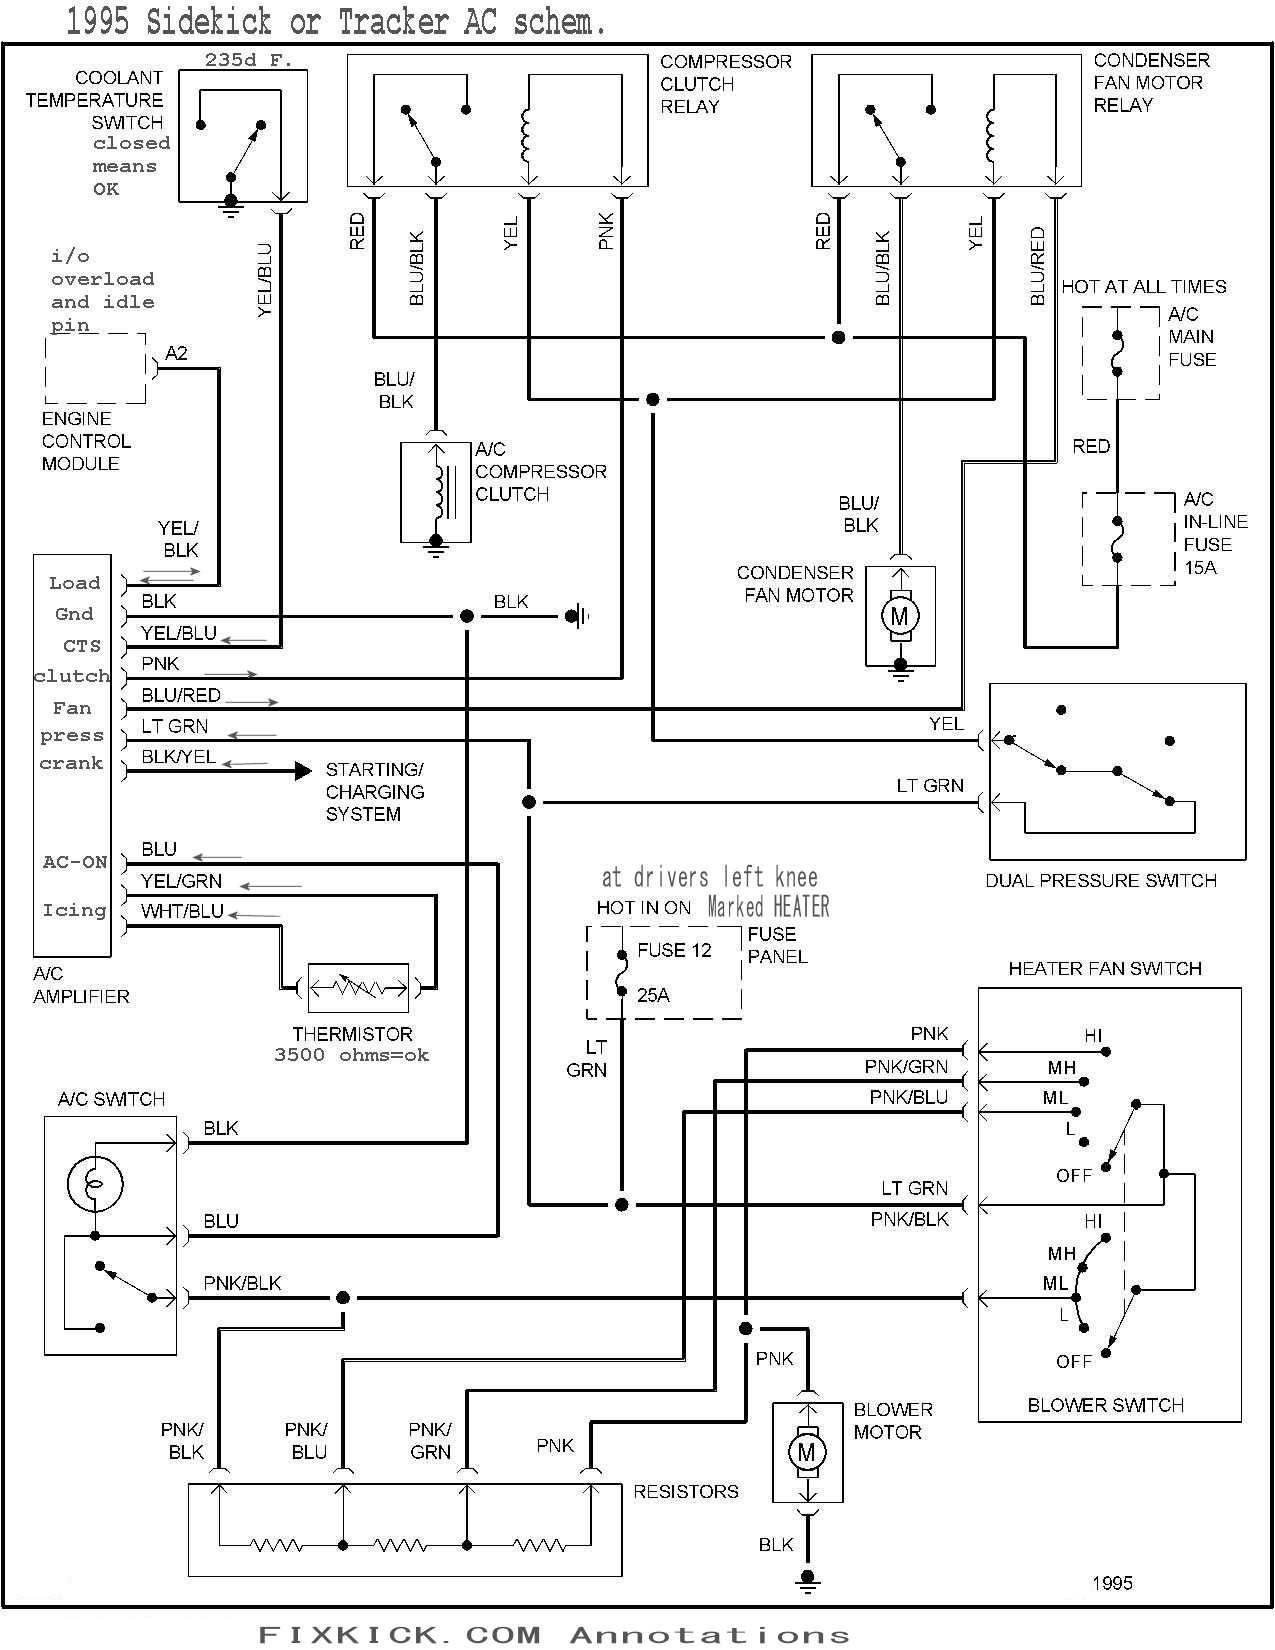 air conditioner repair here is the 95 schematic 95 uses freon r134a click below to zoom it 94 and newer look like below schematic the arrows pointing into amp are inputs